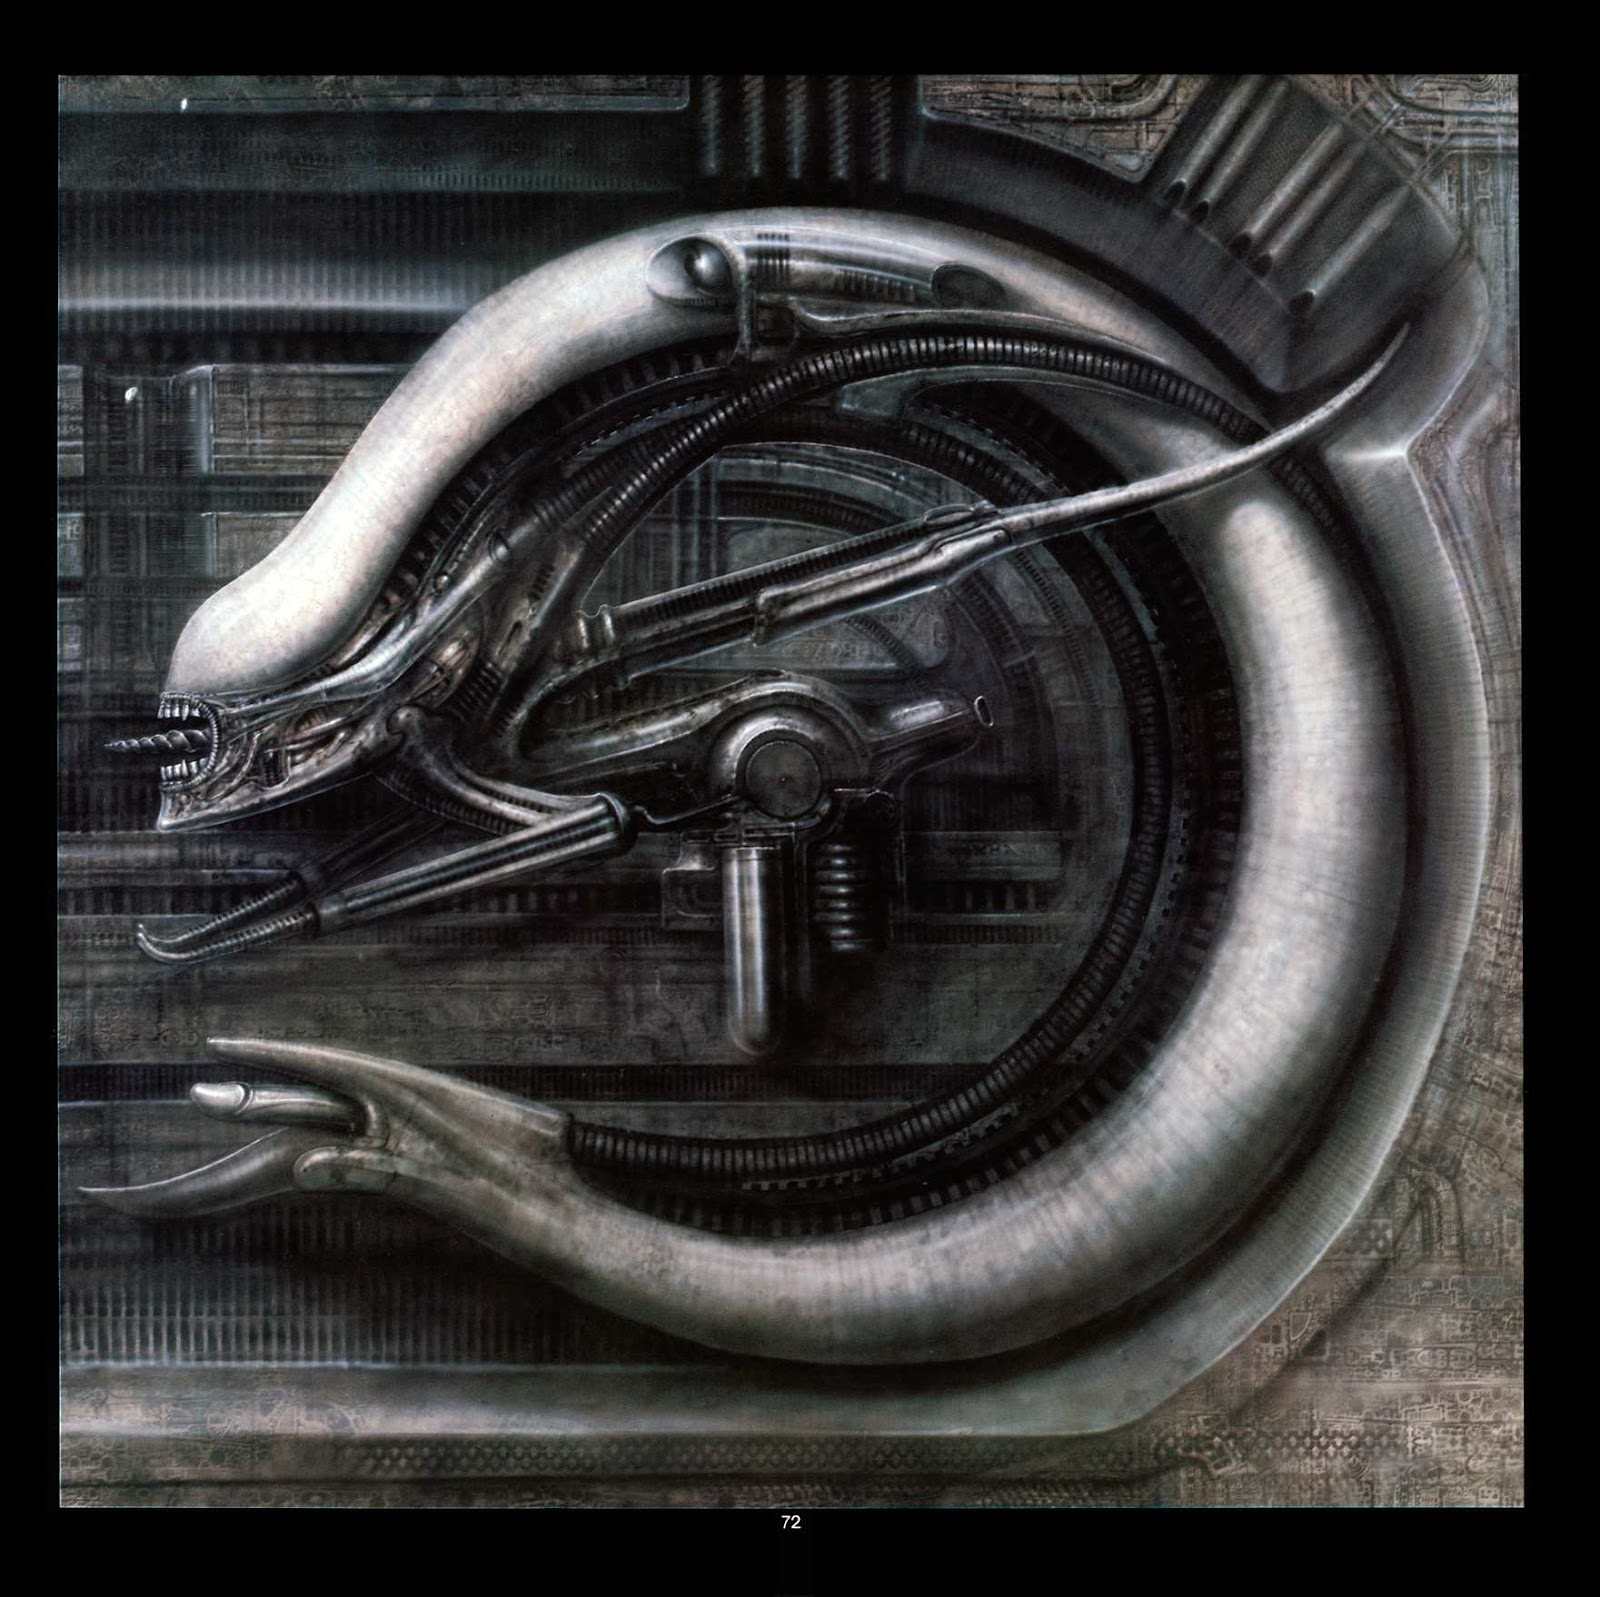 Read online Giger's Alien comic -  Issue # TPB - 74